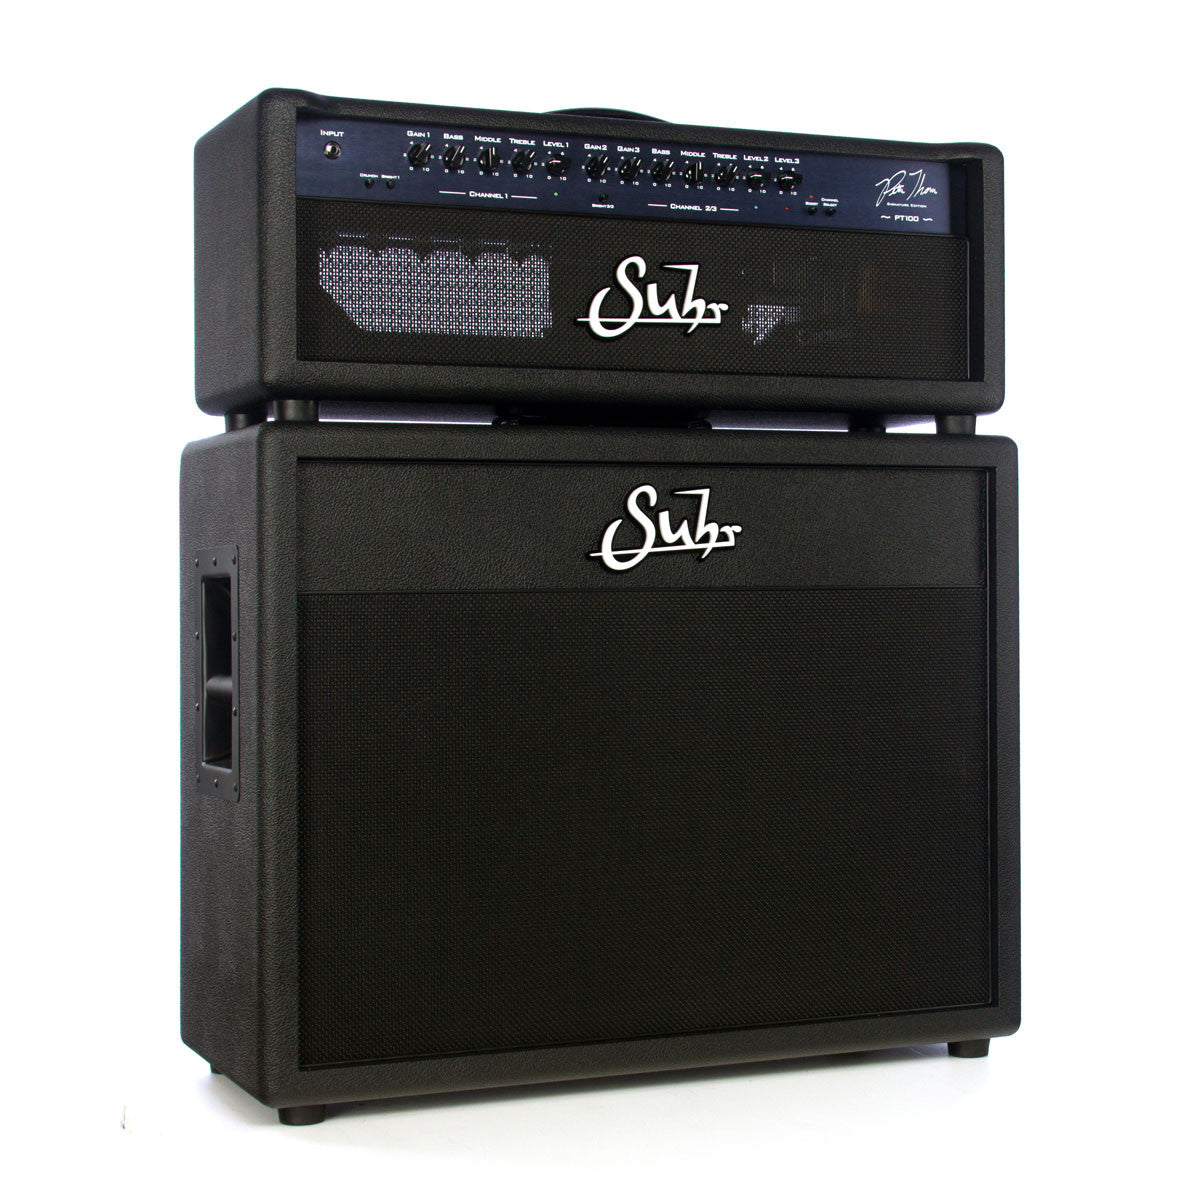 suhr 2x12 closed back speaker cabinet make 39 n music. Black Bedroom Furniture Sets. Home Design Ideas